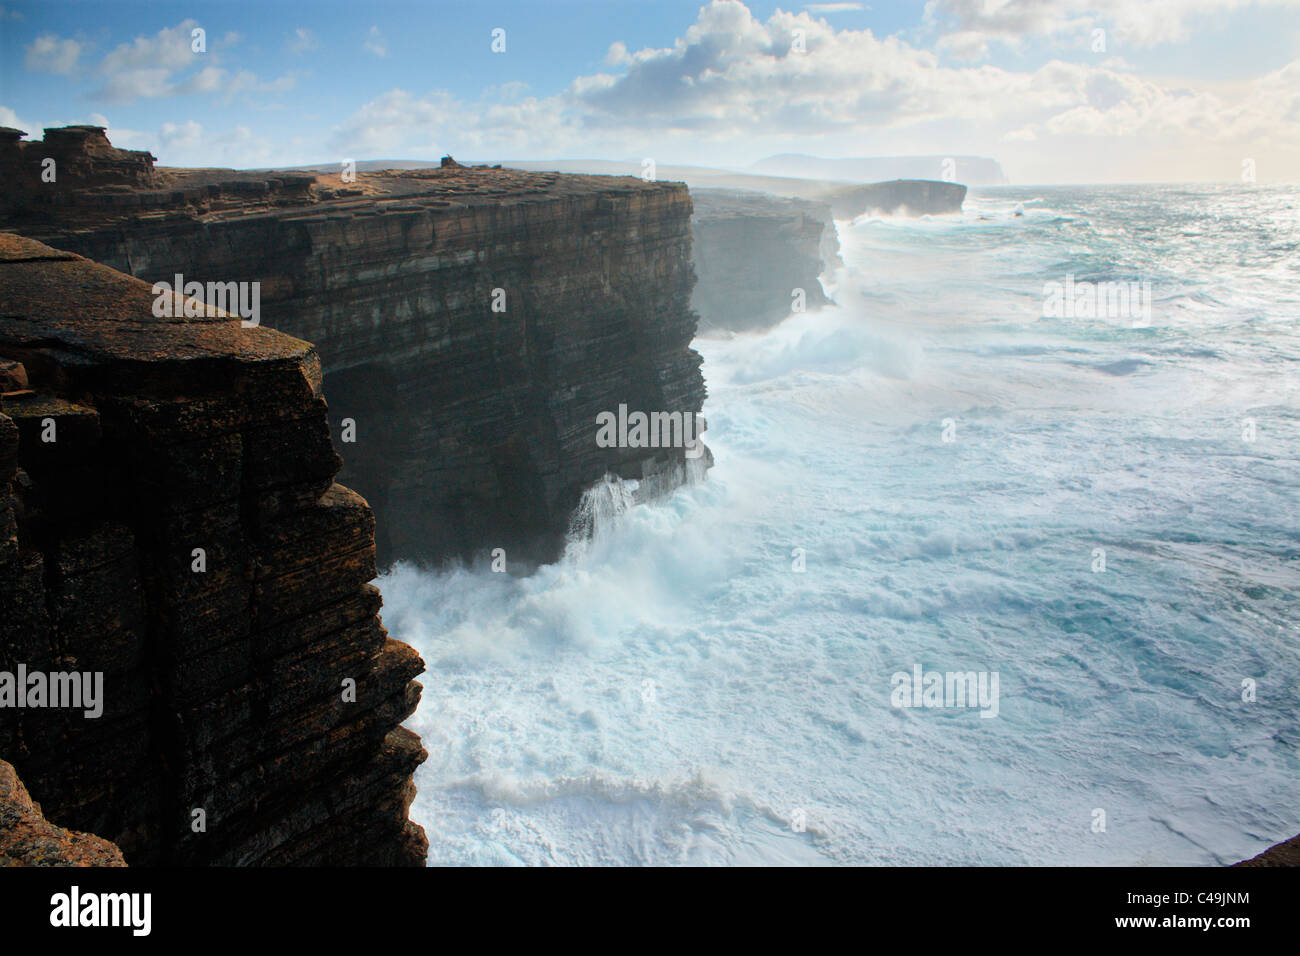 Orkney, Yesnaby rough seas - Stock Image